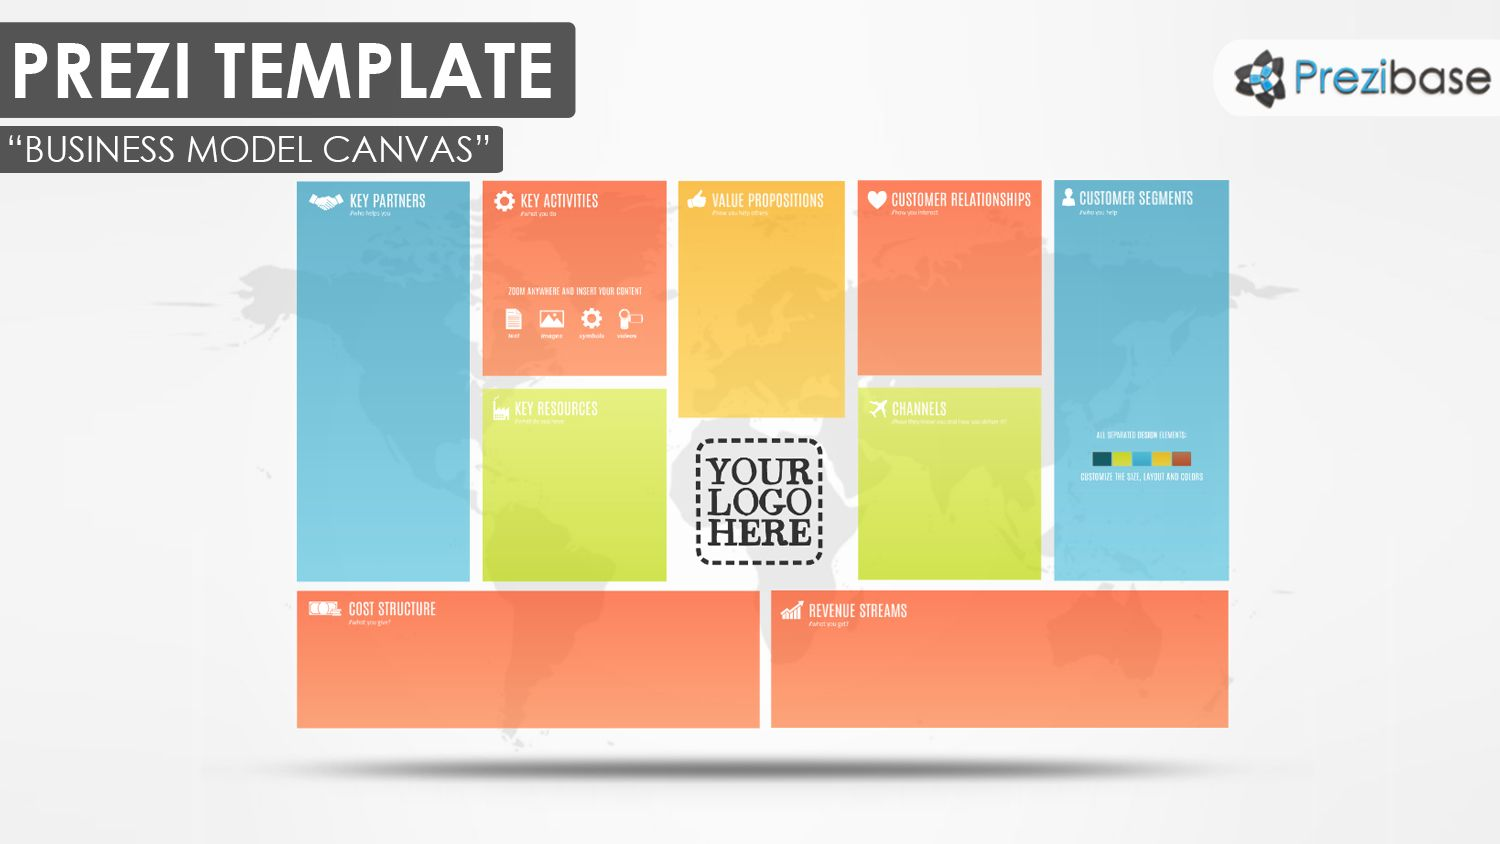 Business model canvas colorful pitch world map prezi template business model canvas colorful pitch world map prezi template cheaphphosting Images